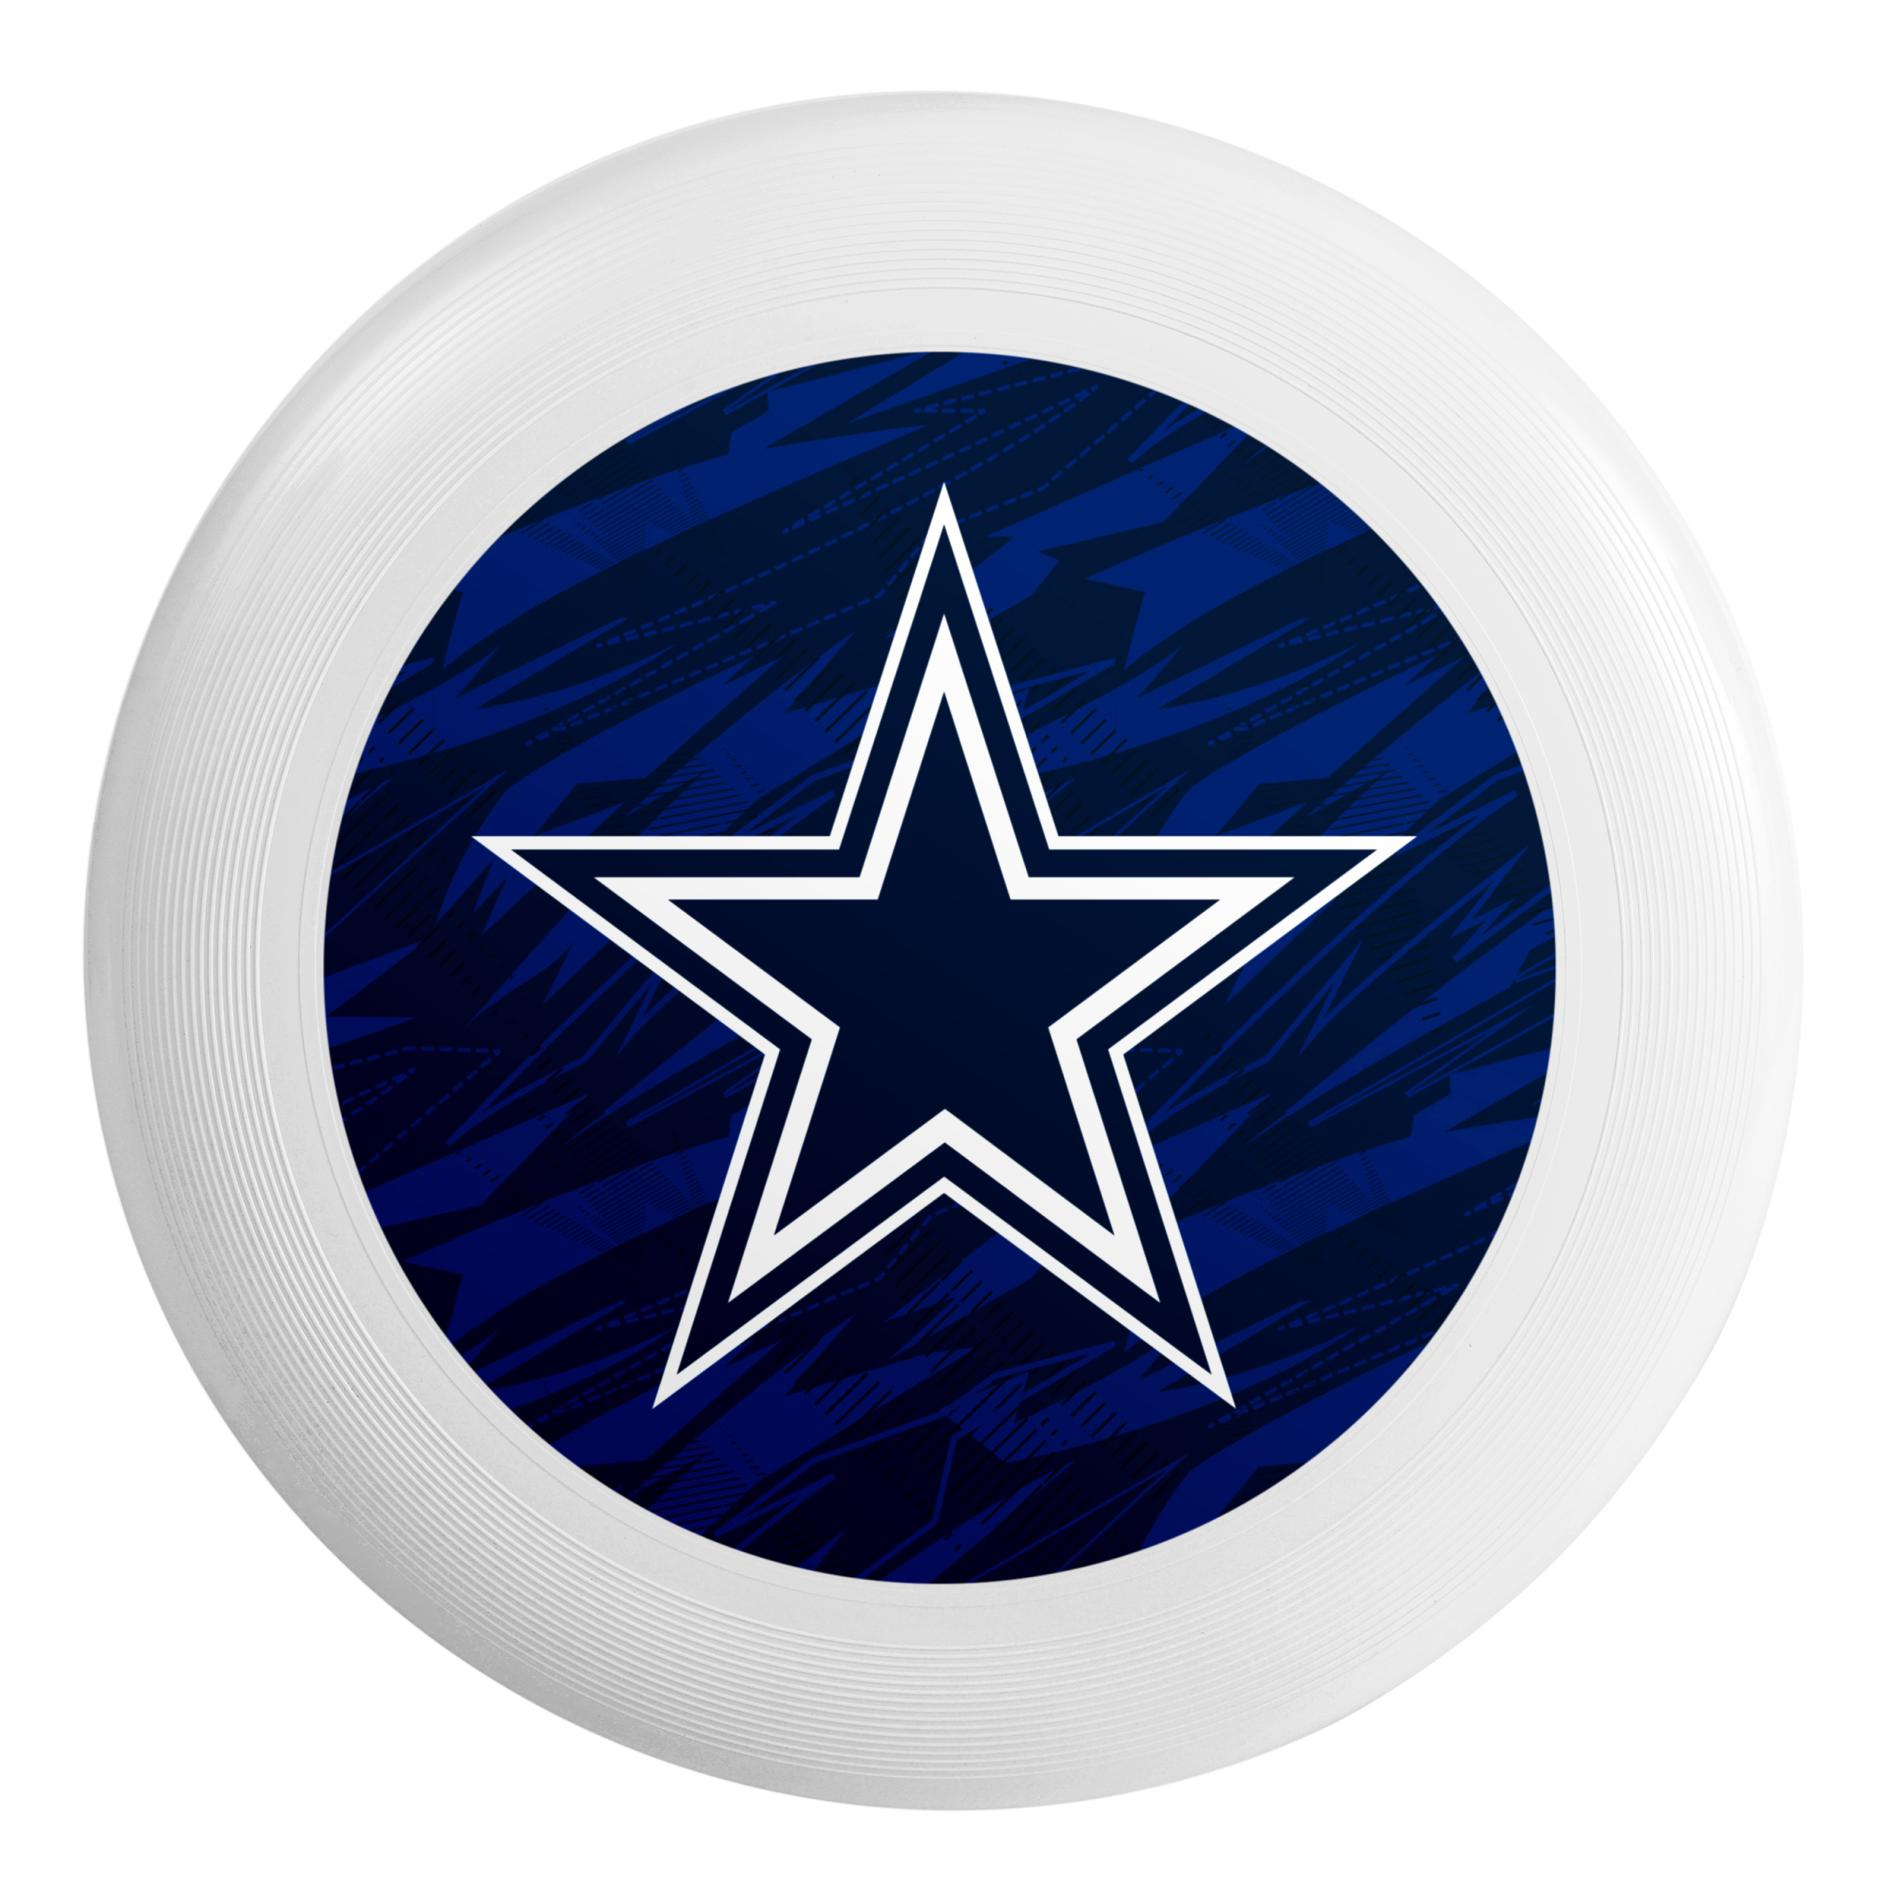 NFL Flying Disc - Dallas Cowboys PartNumber: 046W008743647001P KsnValue: 046W008743647001 MfgPartNumber: DSCNFHETLSRDC